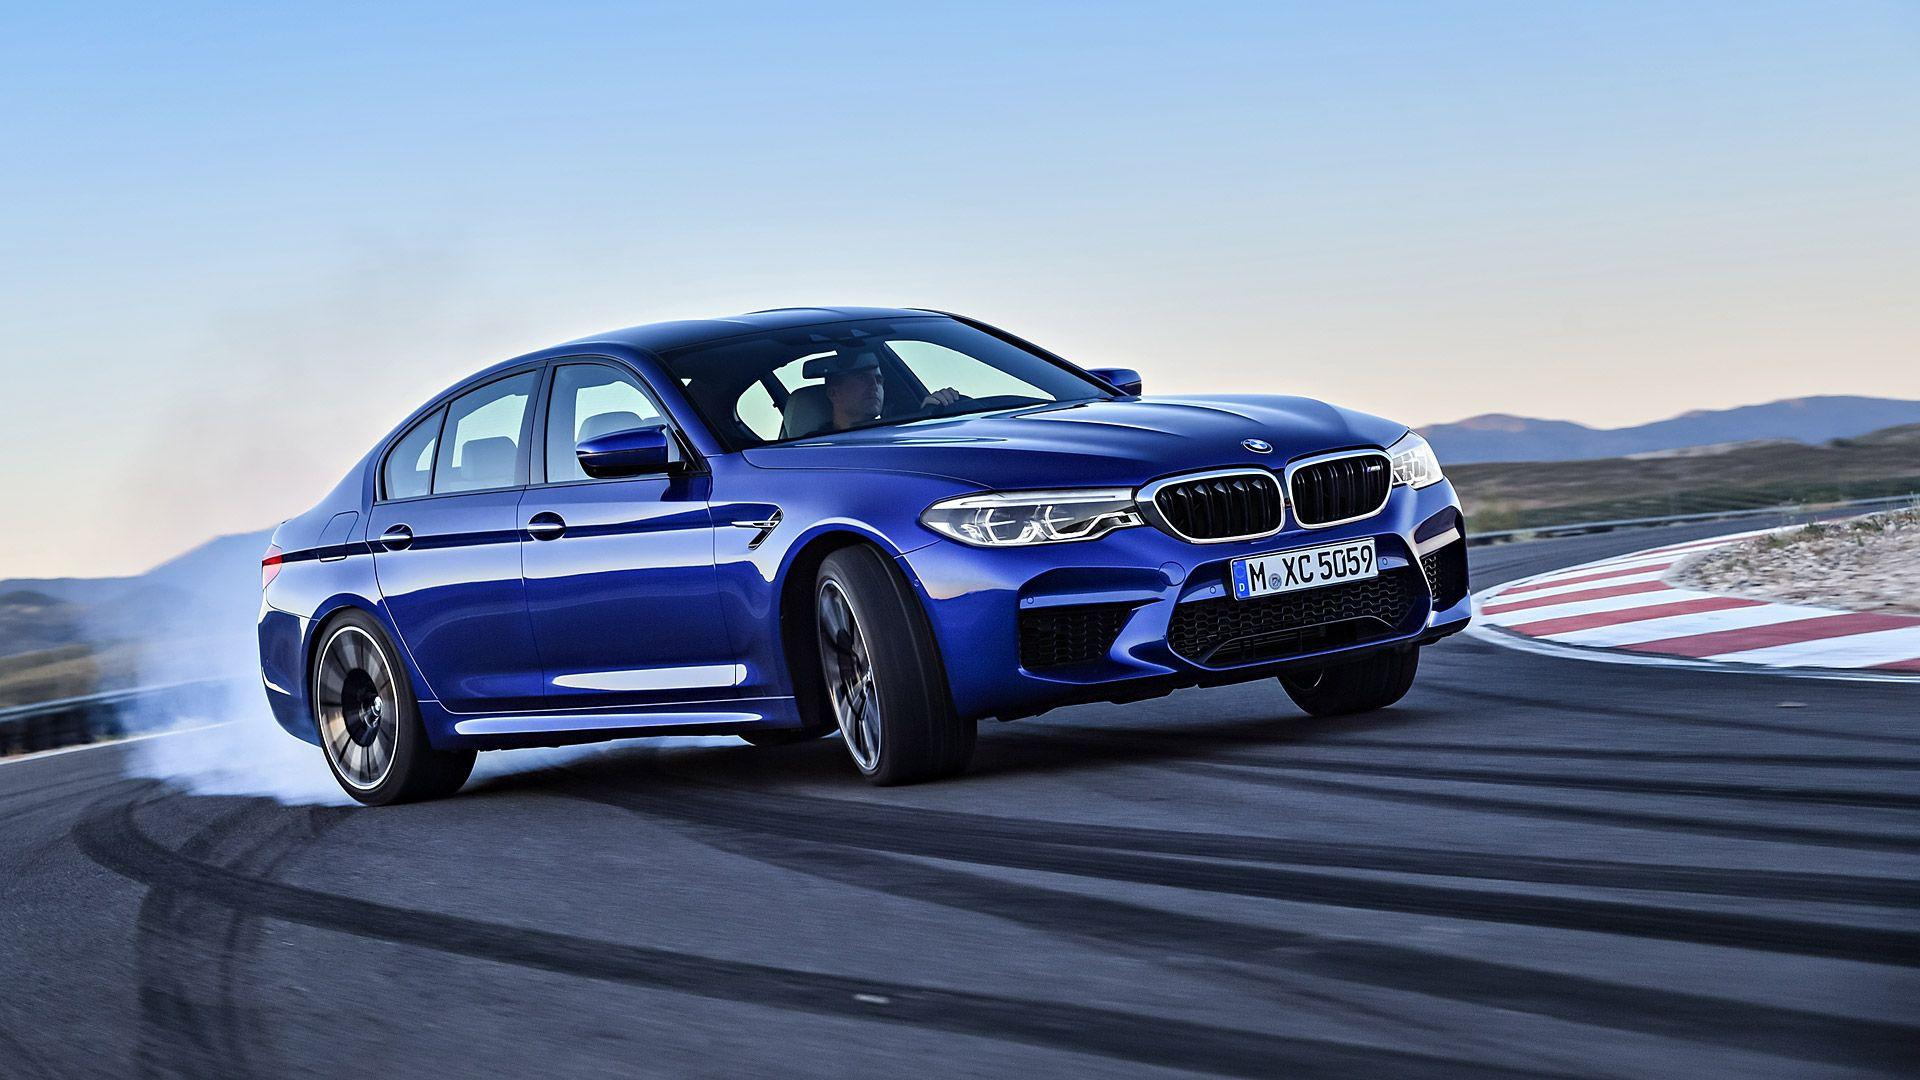 Bmw M5 F90 Wallpapers Wallpaper Cave